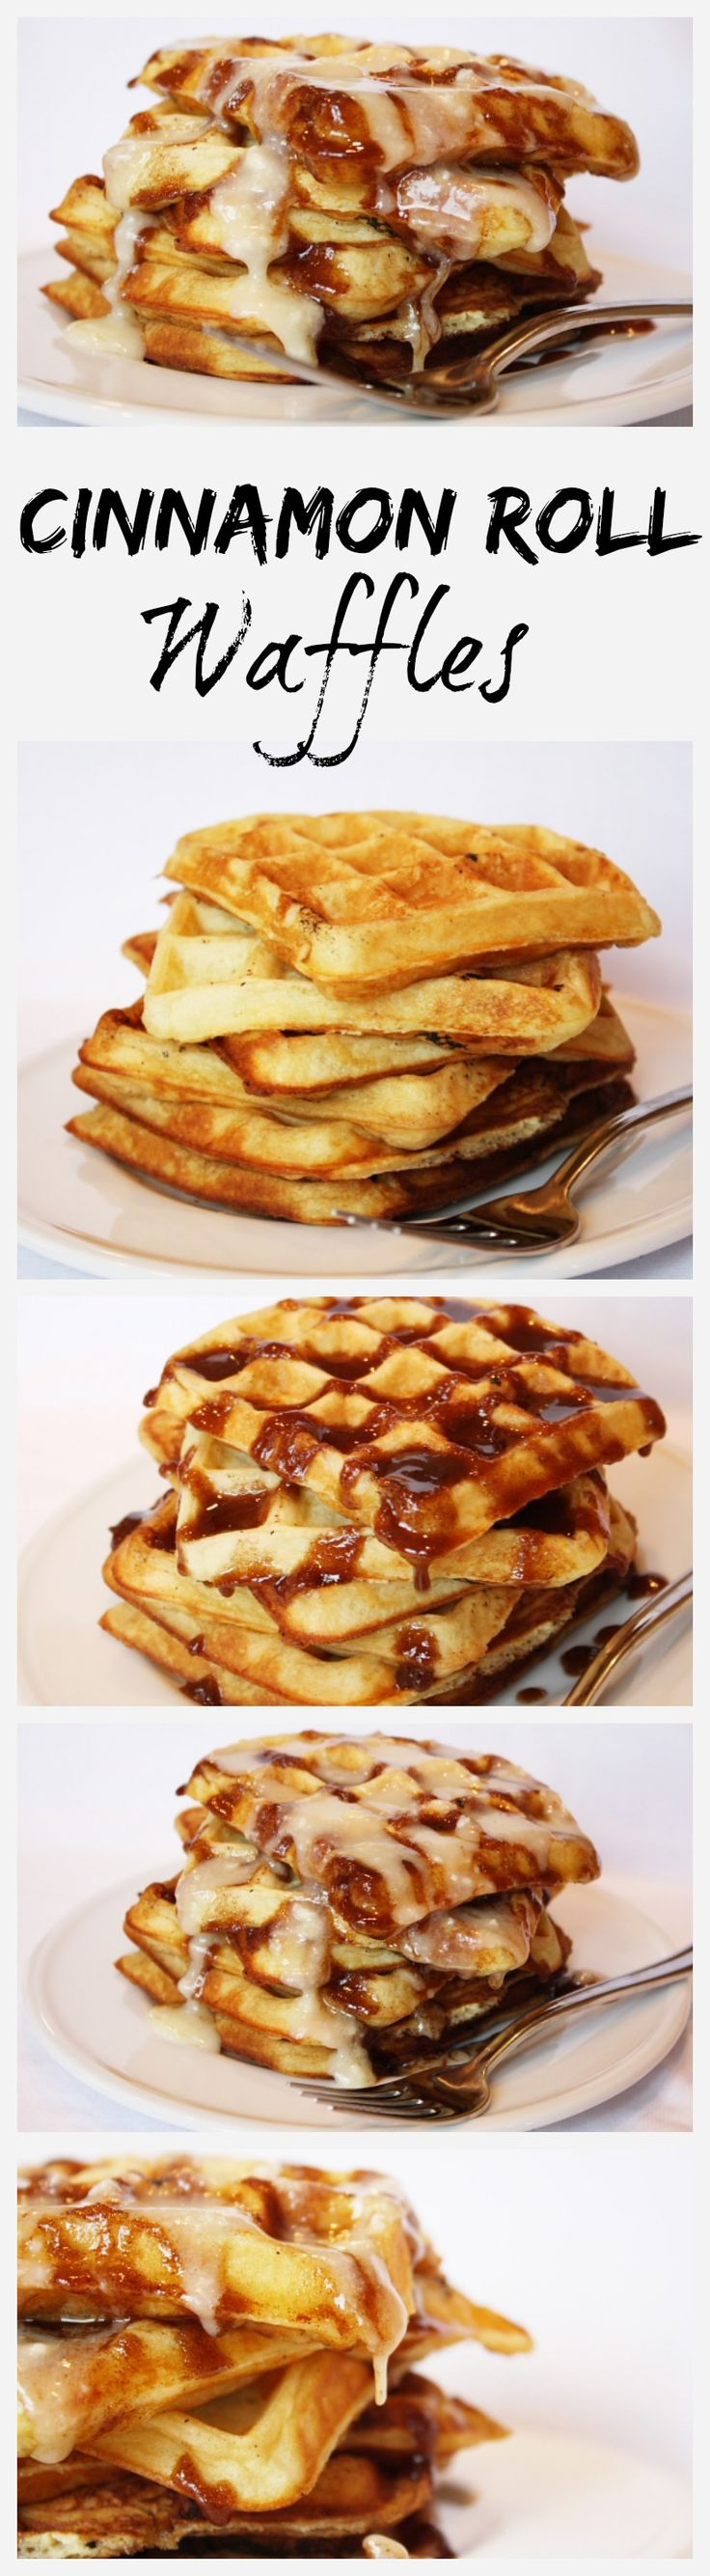 Cinnamon Roll Waffles #recipe - Best weekend breakfast ever!